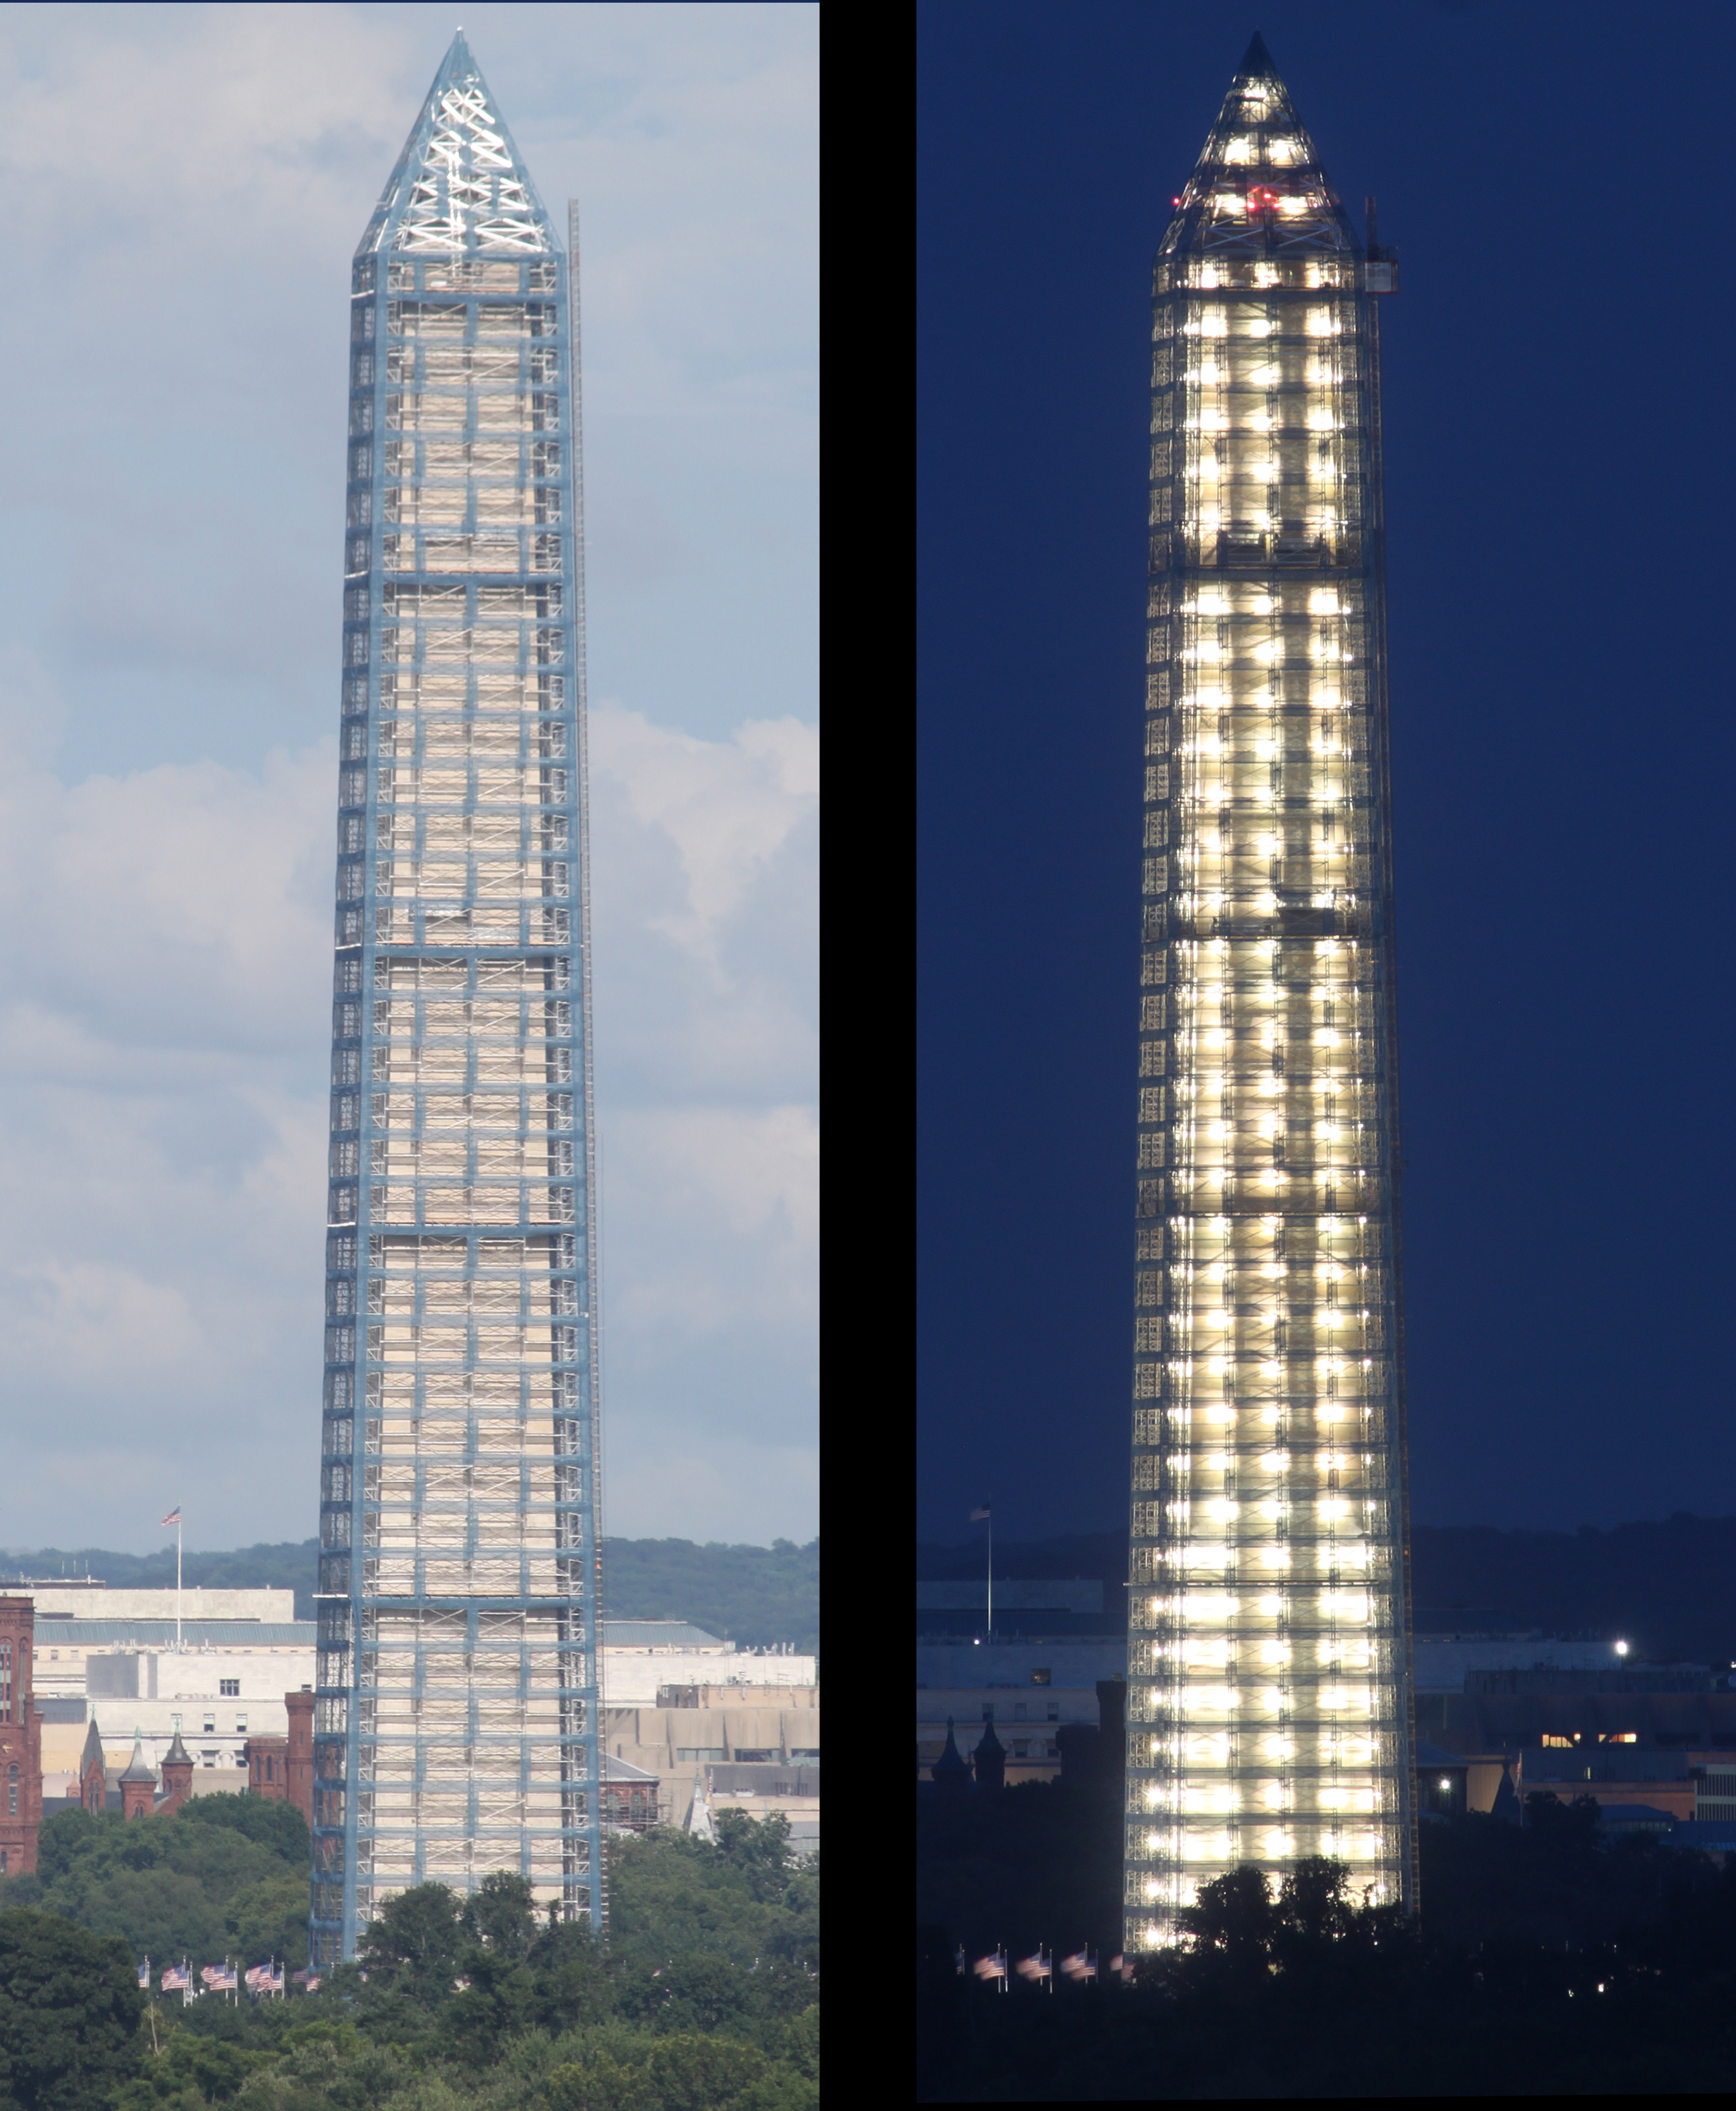 Washington Monument scaffolding (day and night)